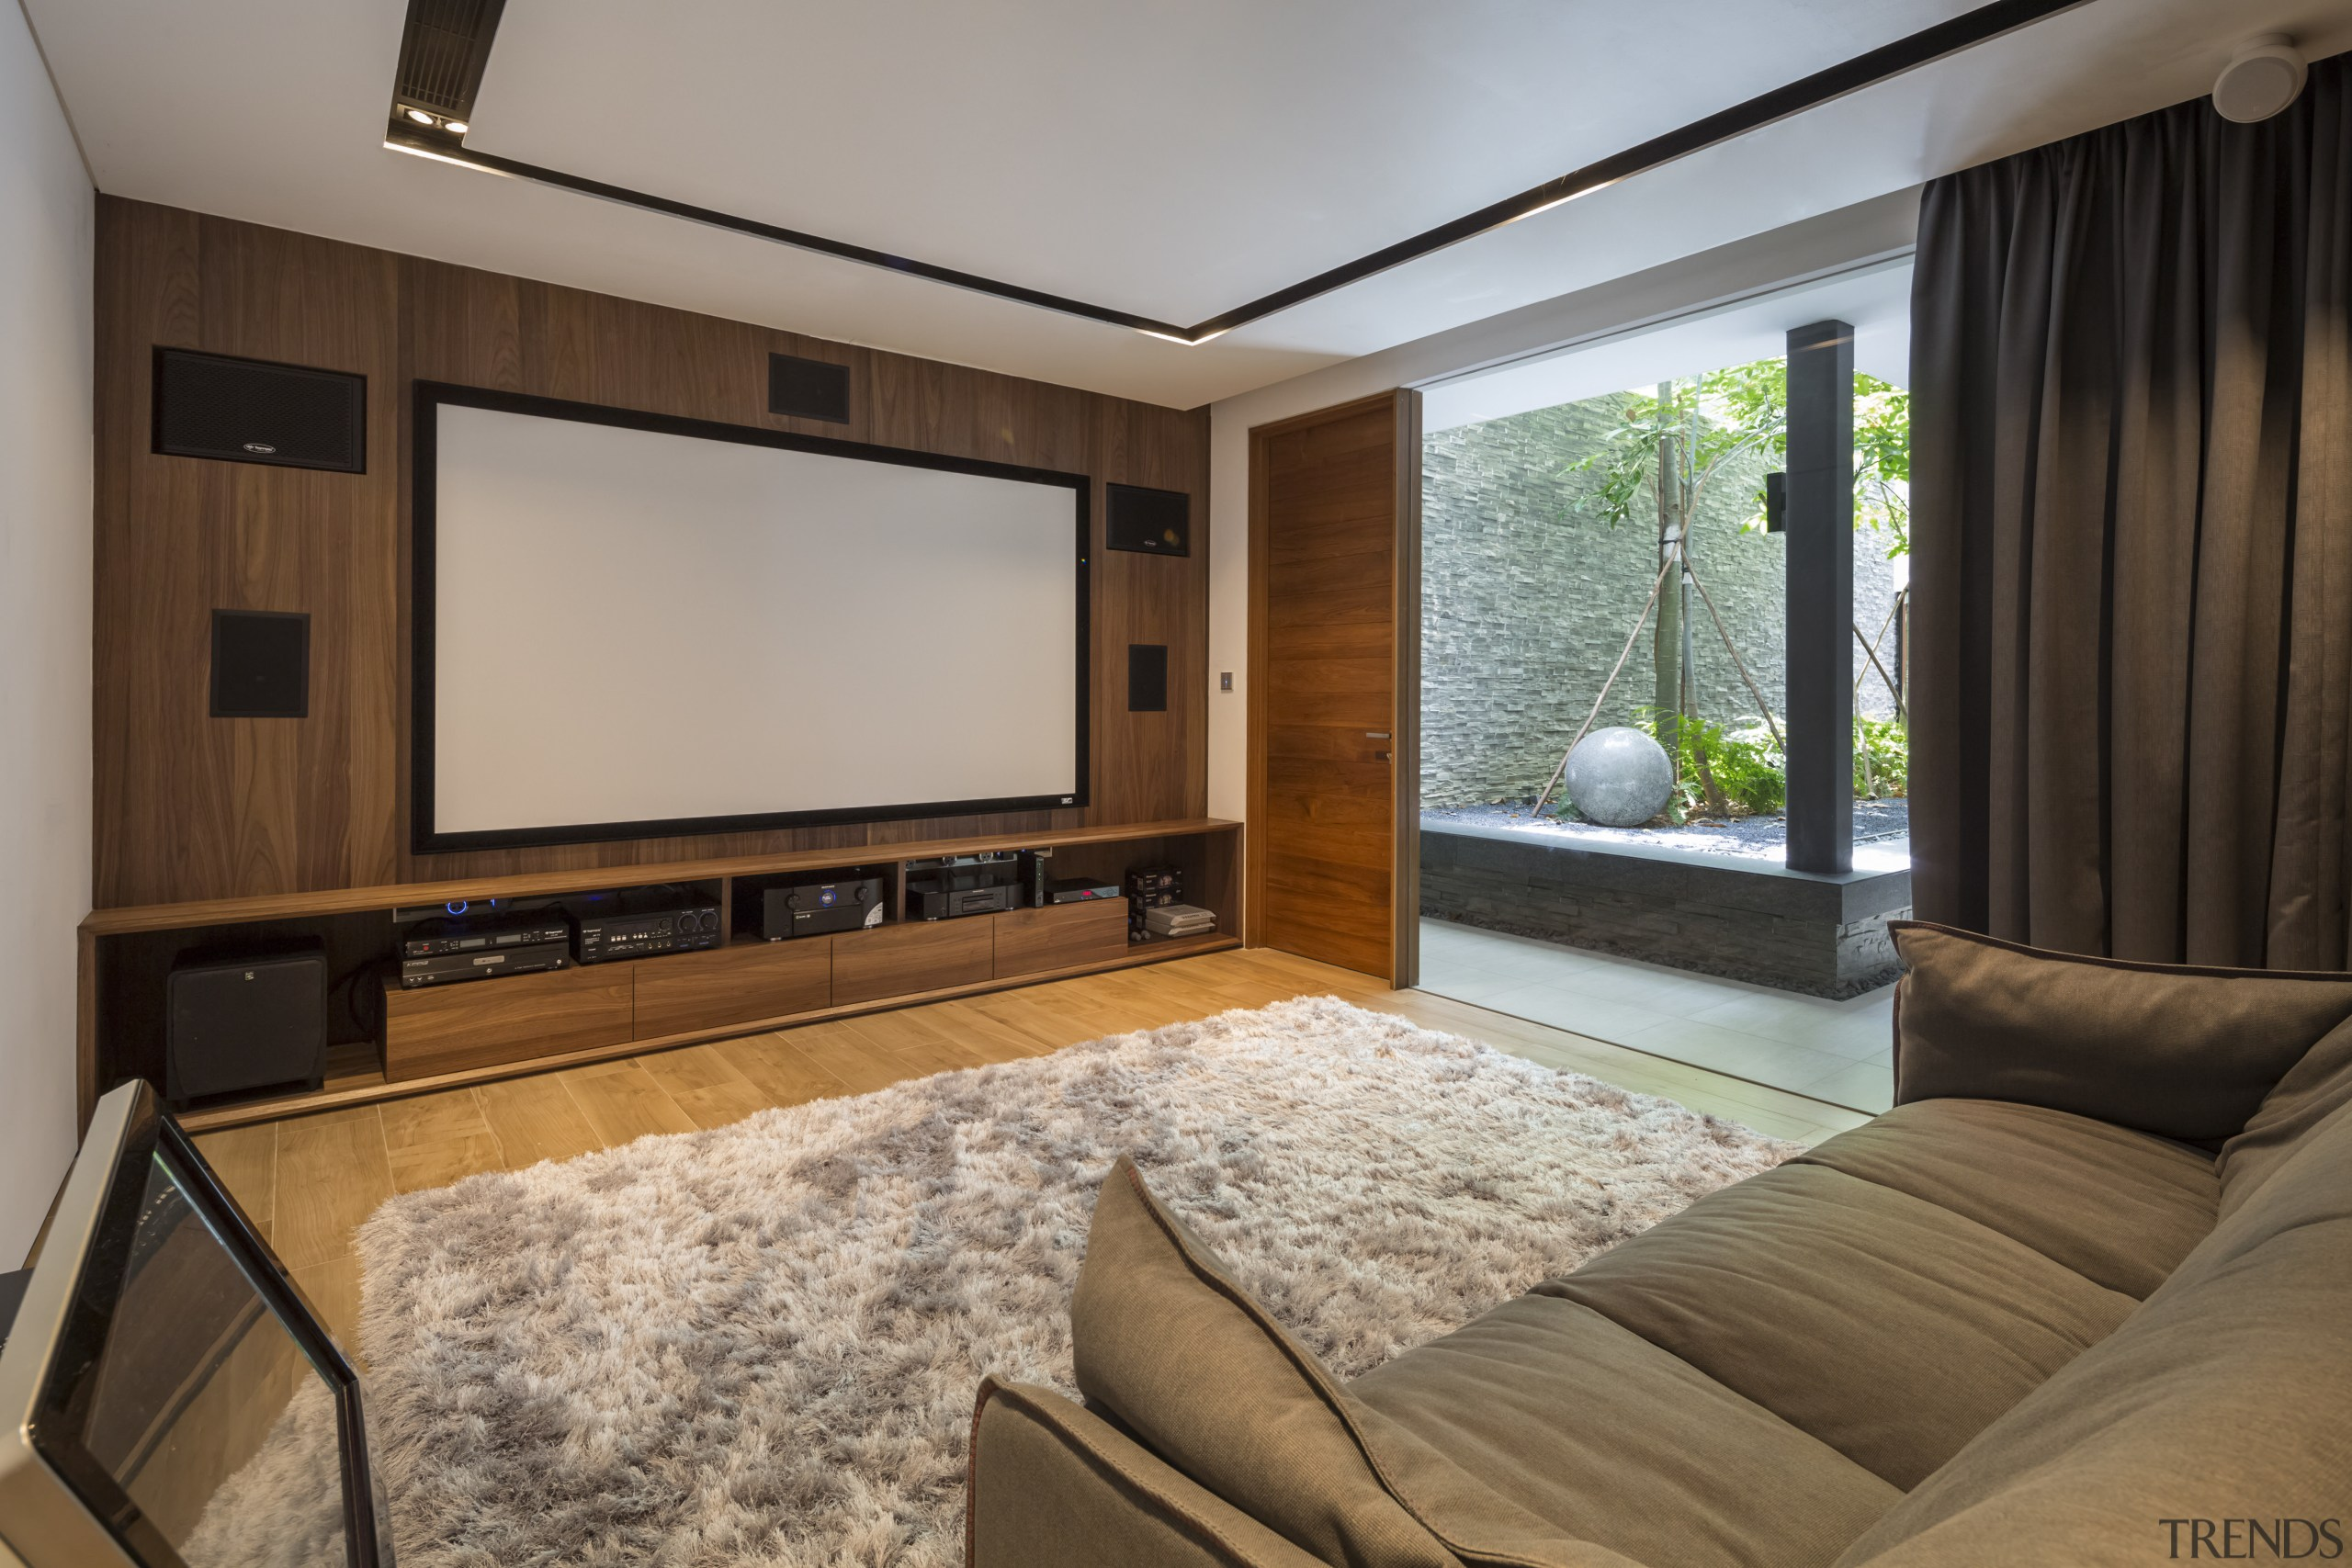 While this entertainment room is at basement level ceiling, home, interior design, living room, property, real estate, room, window, gray, brown